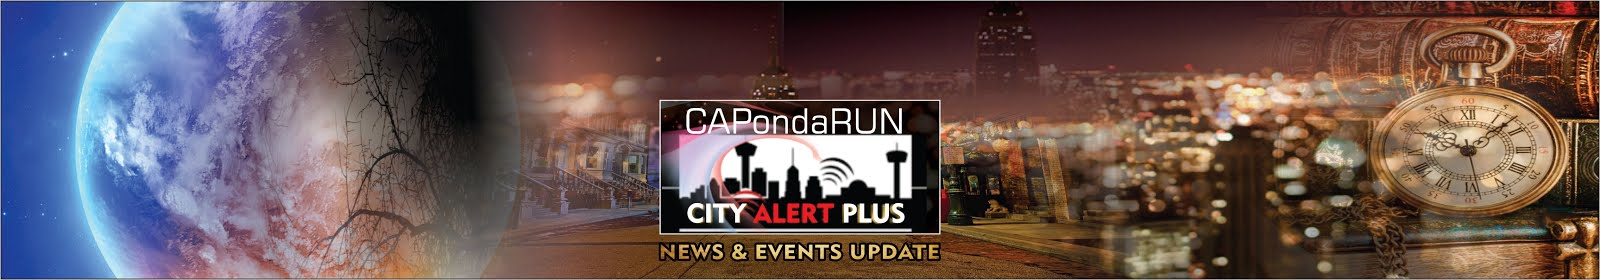 Welcome to City Alert Plus #CAPondaRUN